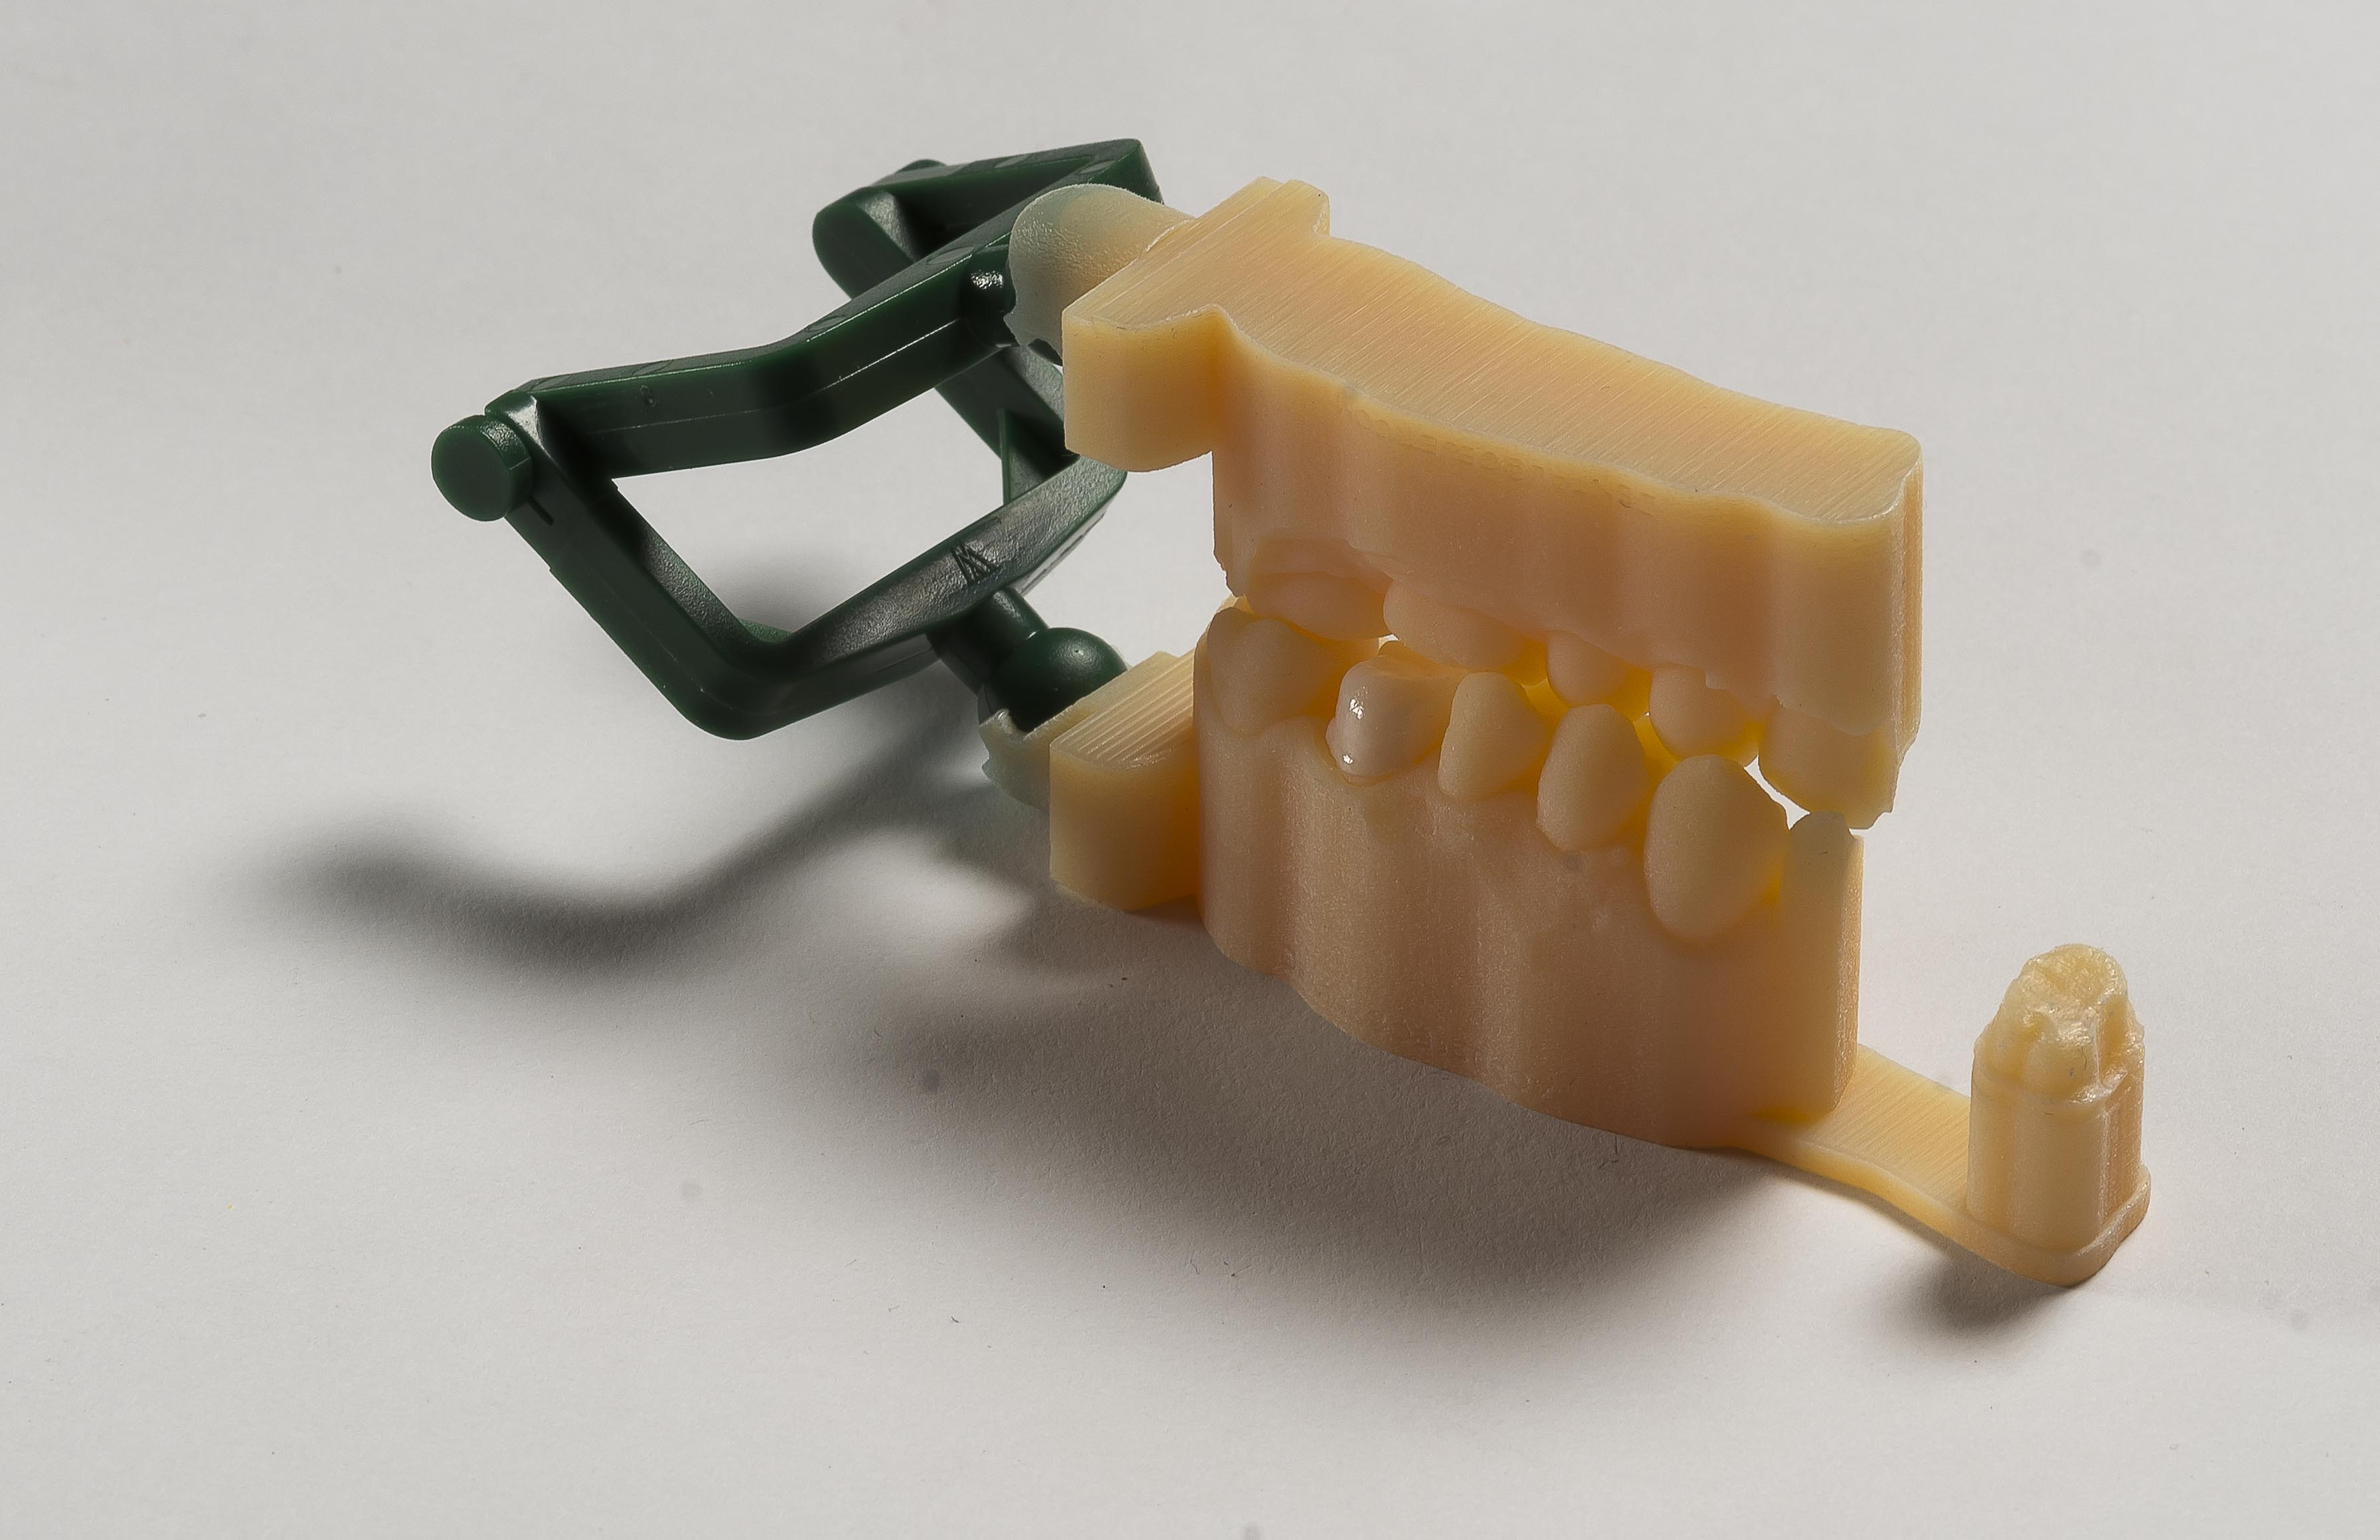 3d printing dental implants